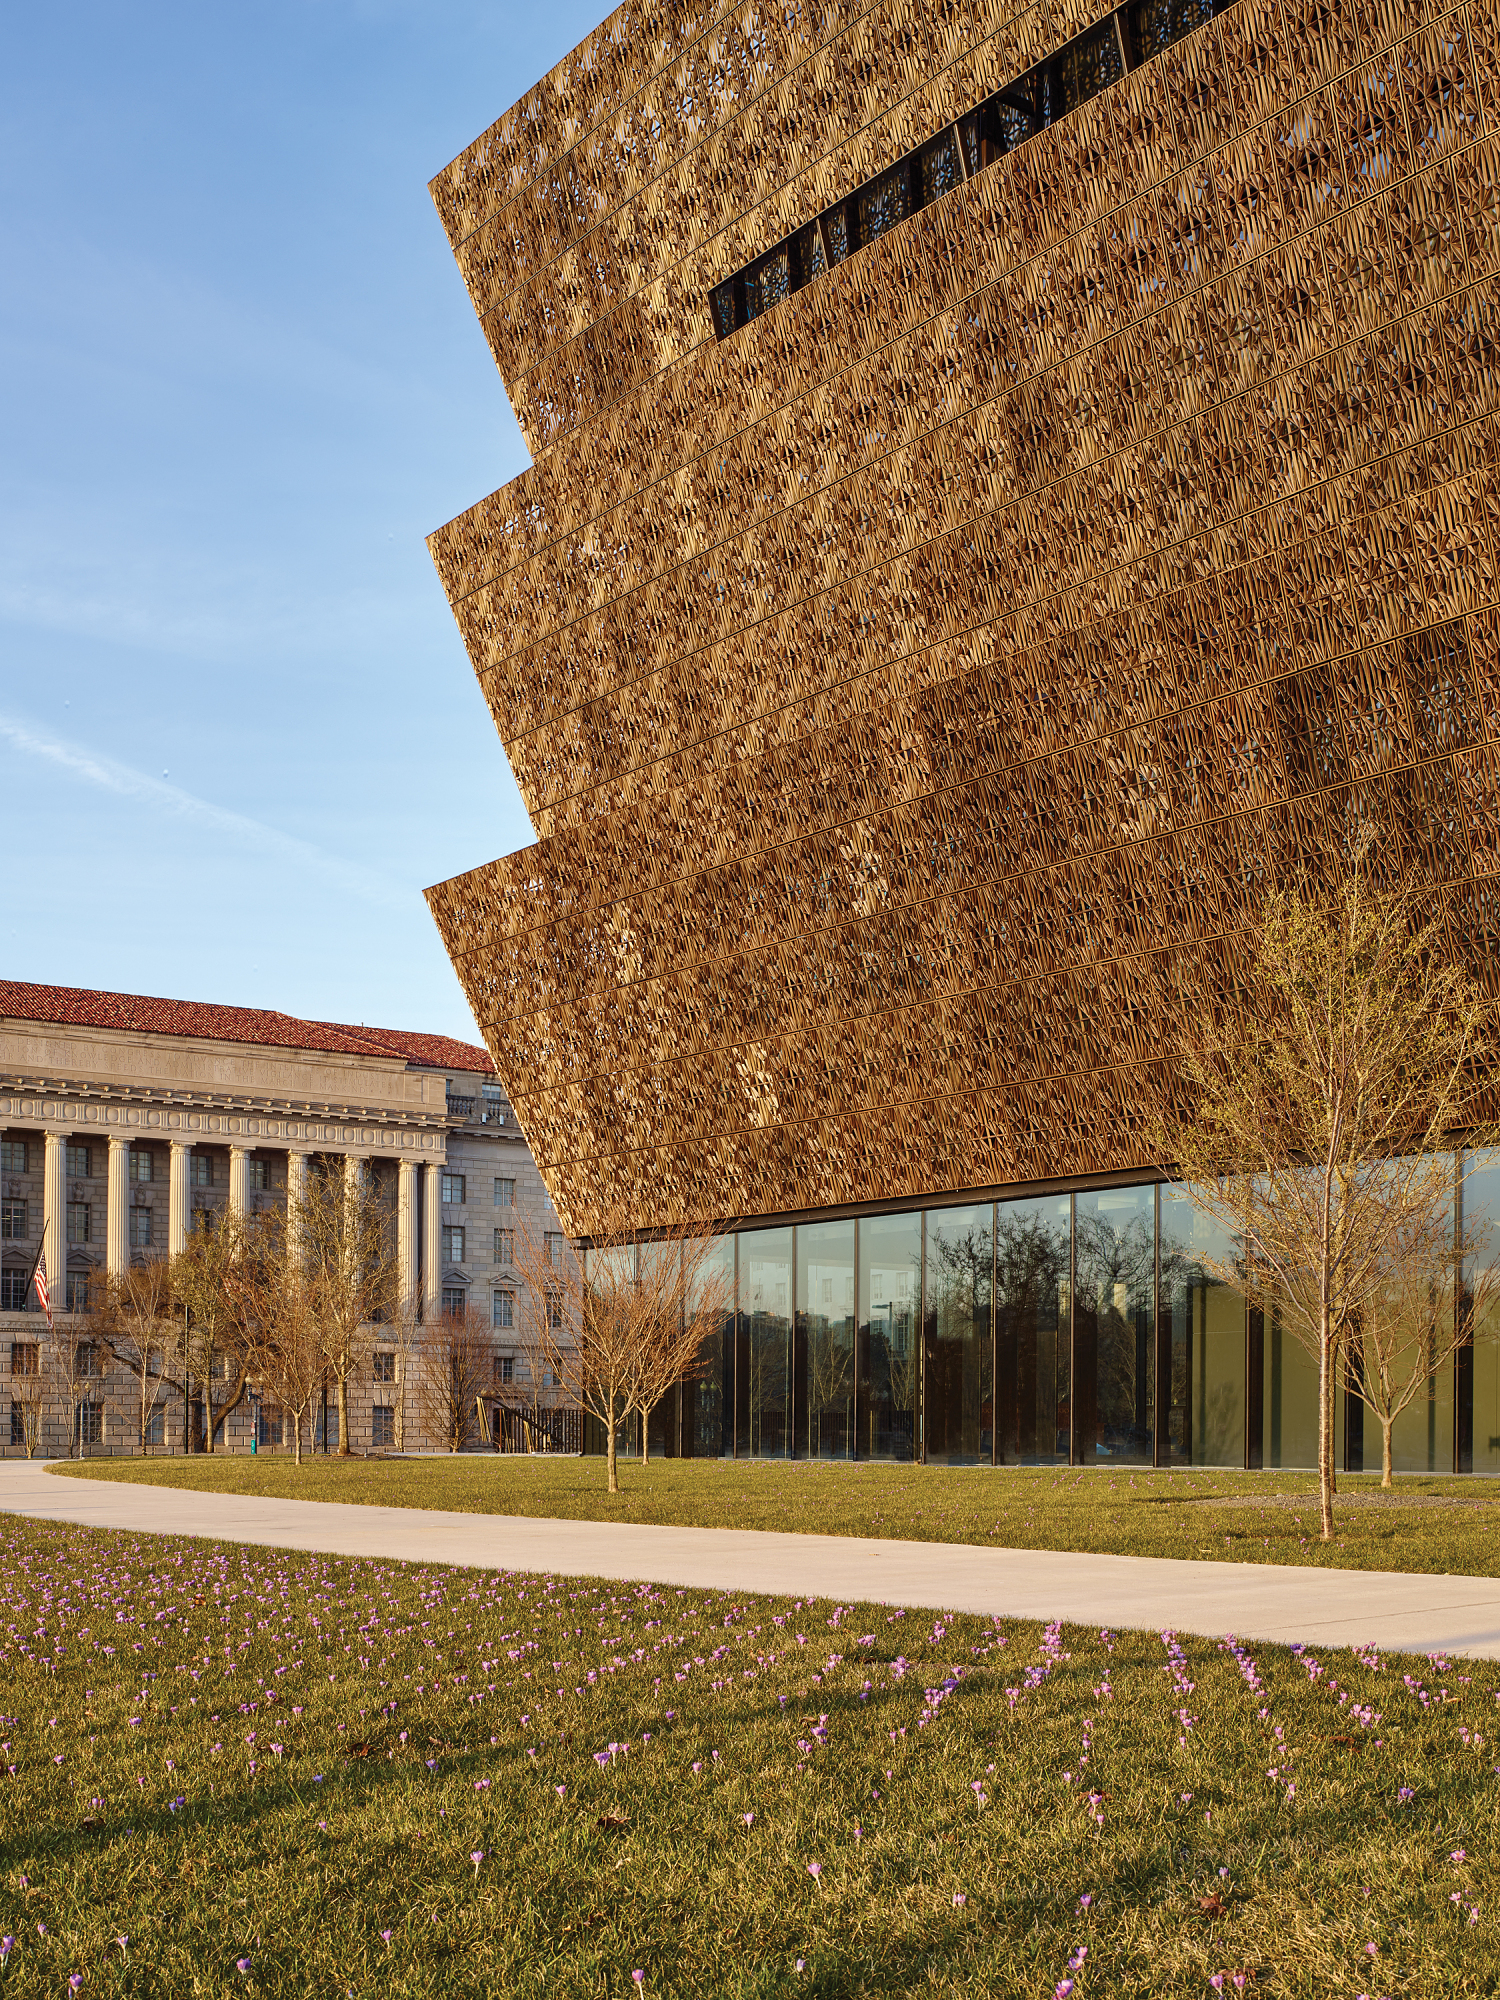 View of National Museum of African American History and Culture